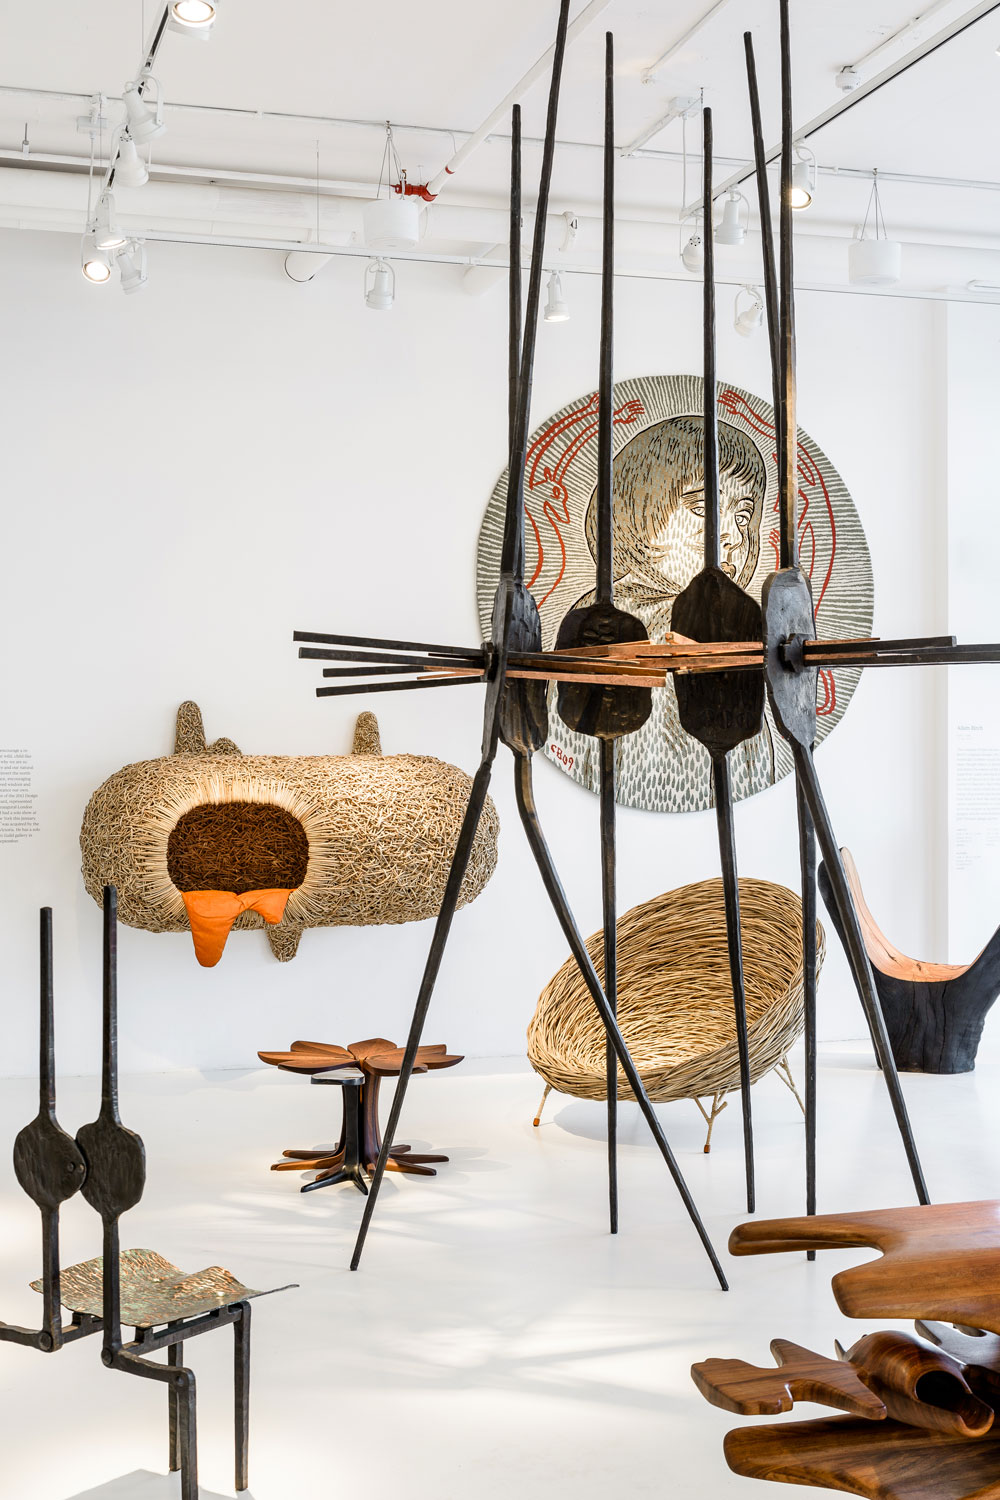 invited designers like Hamed Ouattara of Burkina Faso and Cheick Diallo  of Mali into their stable  to exhibit alongside established South African  names. GUILD opens gallery and concept store on V A s Silo District